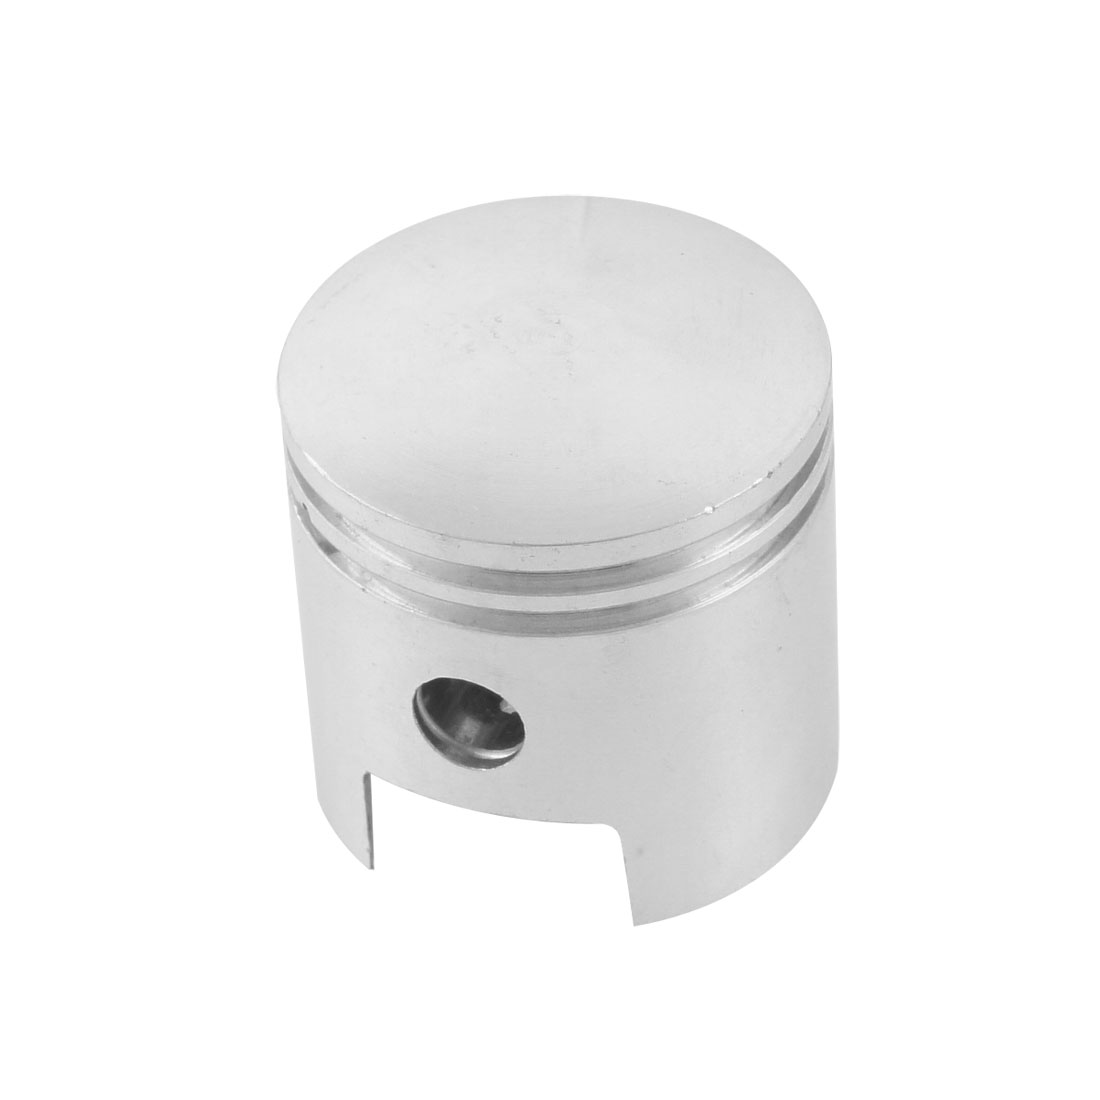 Air Compressor Silver Tone 46mm Diameter Aluminum Alloy Engine Piston